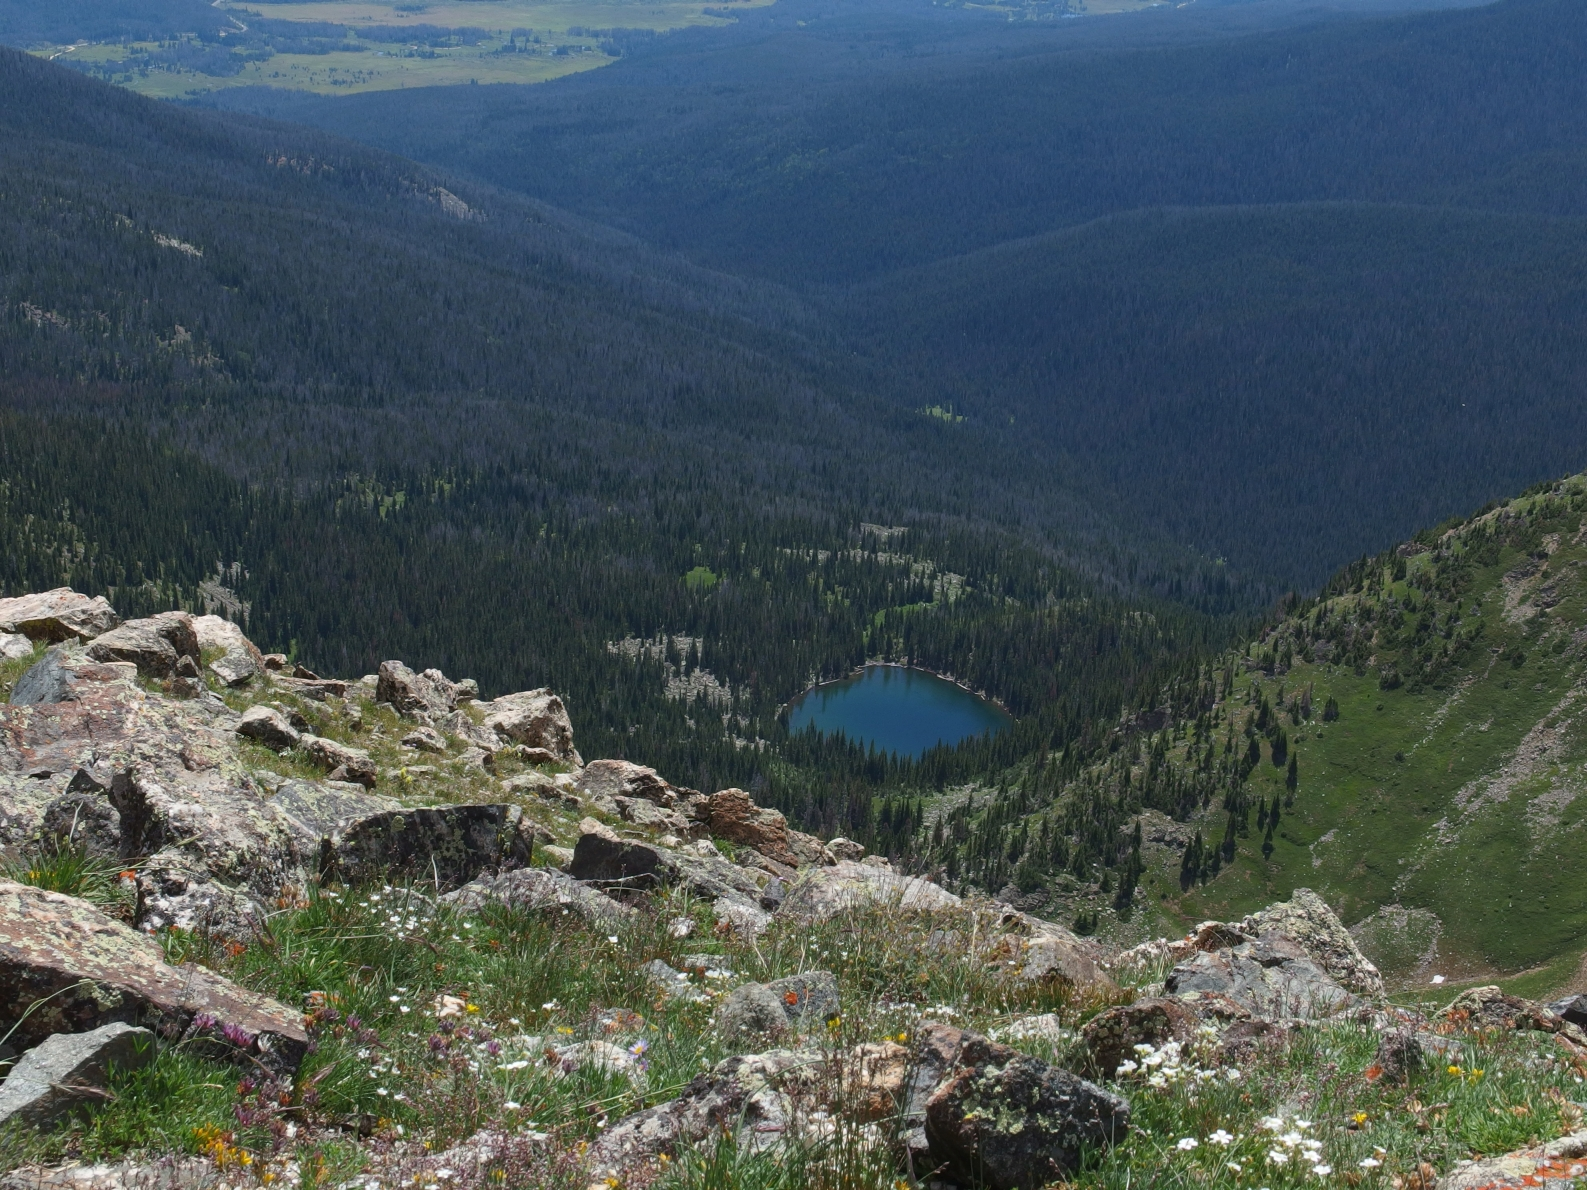 A great view of Blue Lake. For reference, there is also a Blue Lake within  RMNP, located in Glacier Gorge.